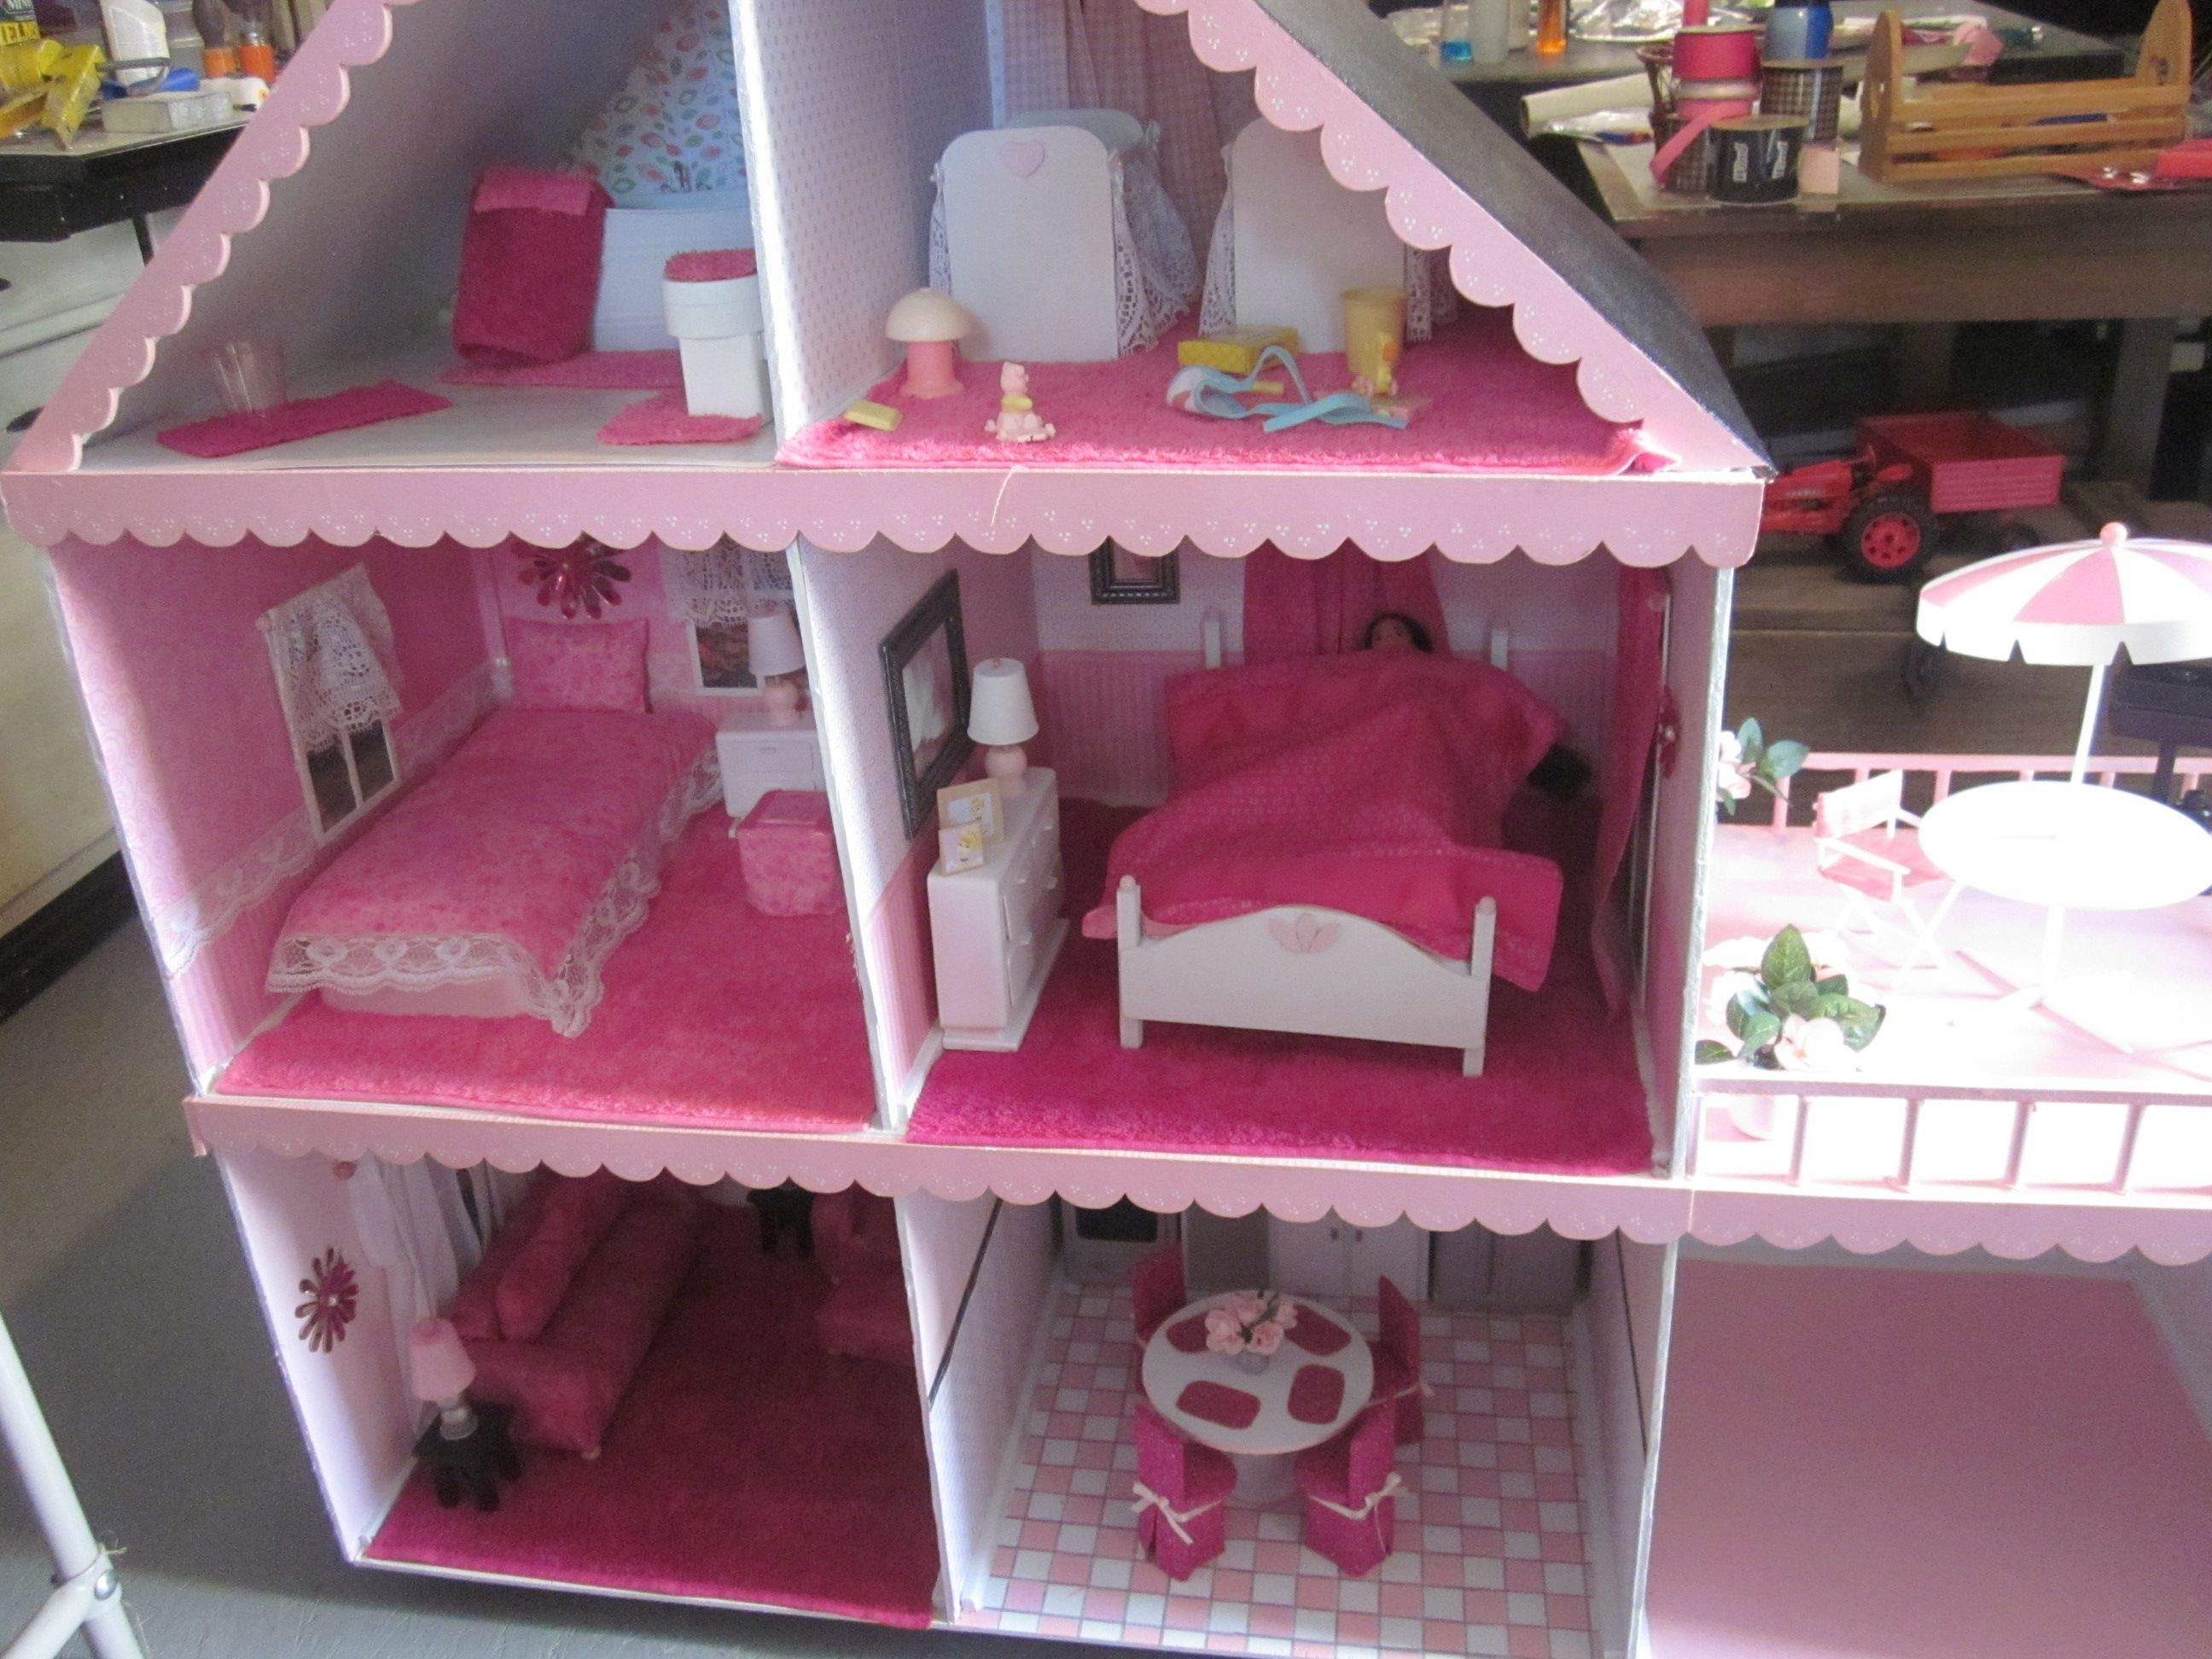 10 awesome barbie doll house models - Barbie Doll House